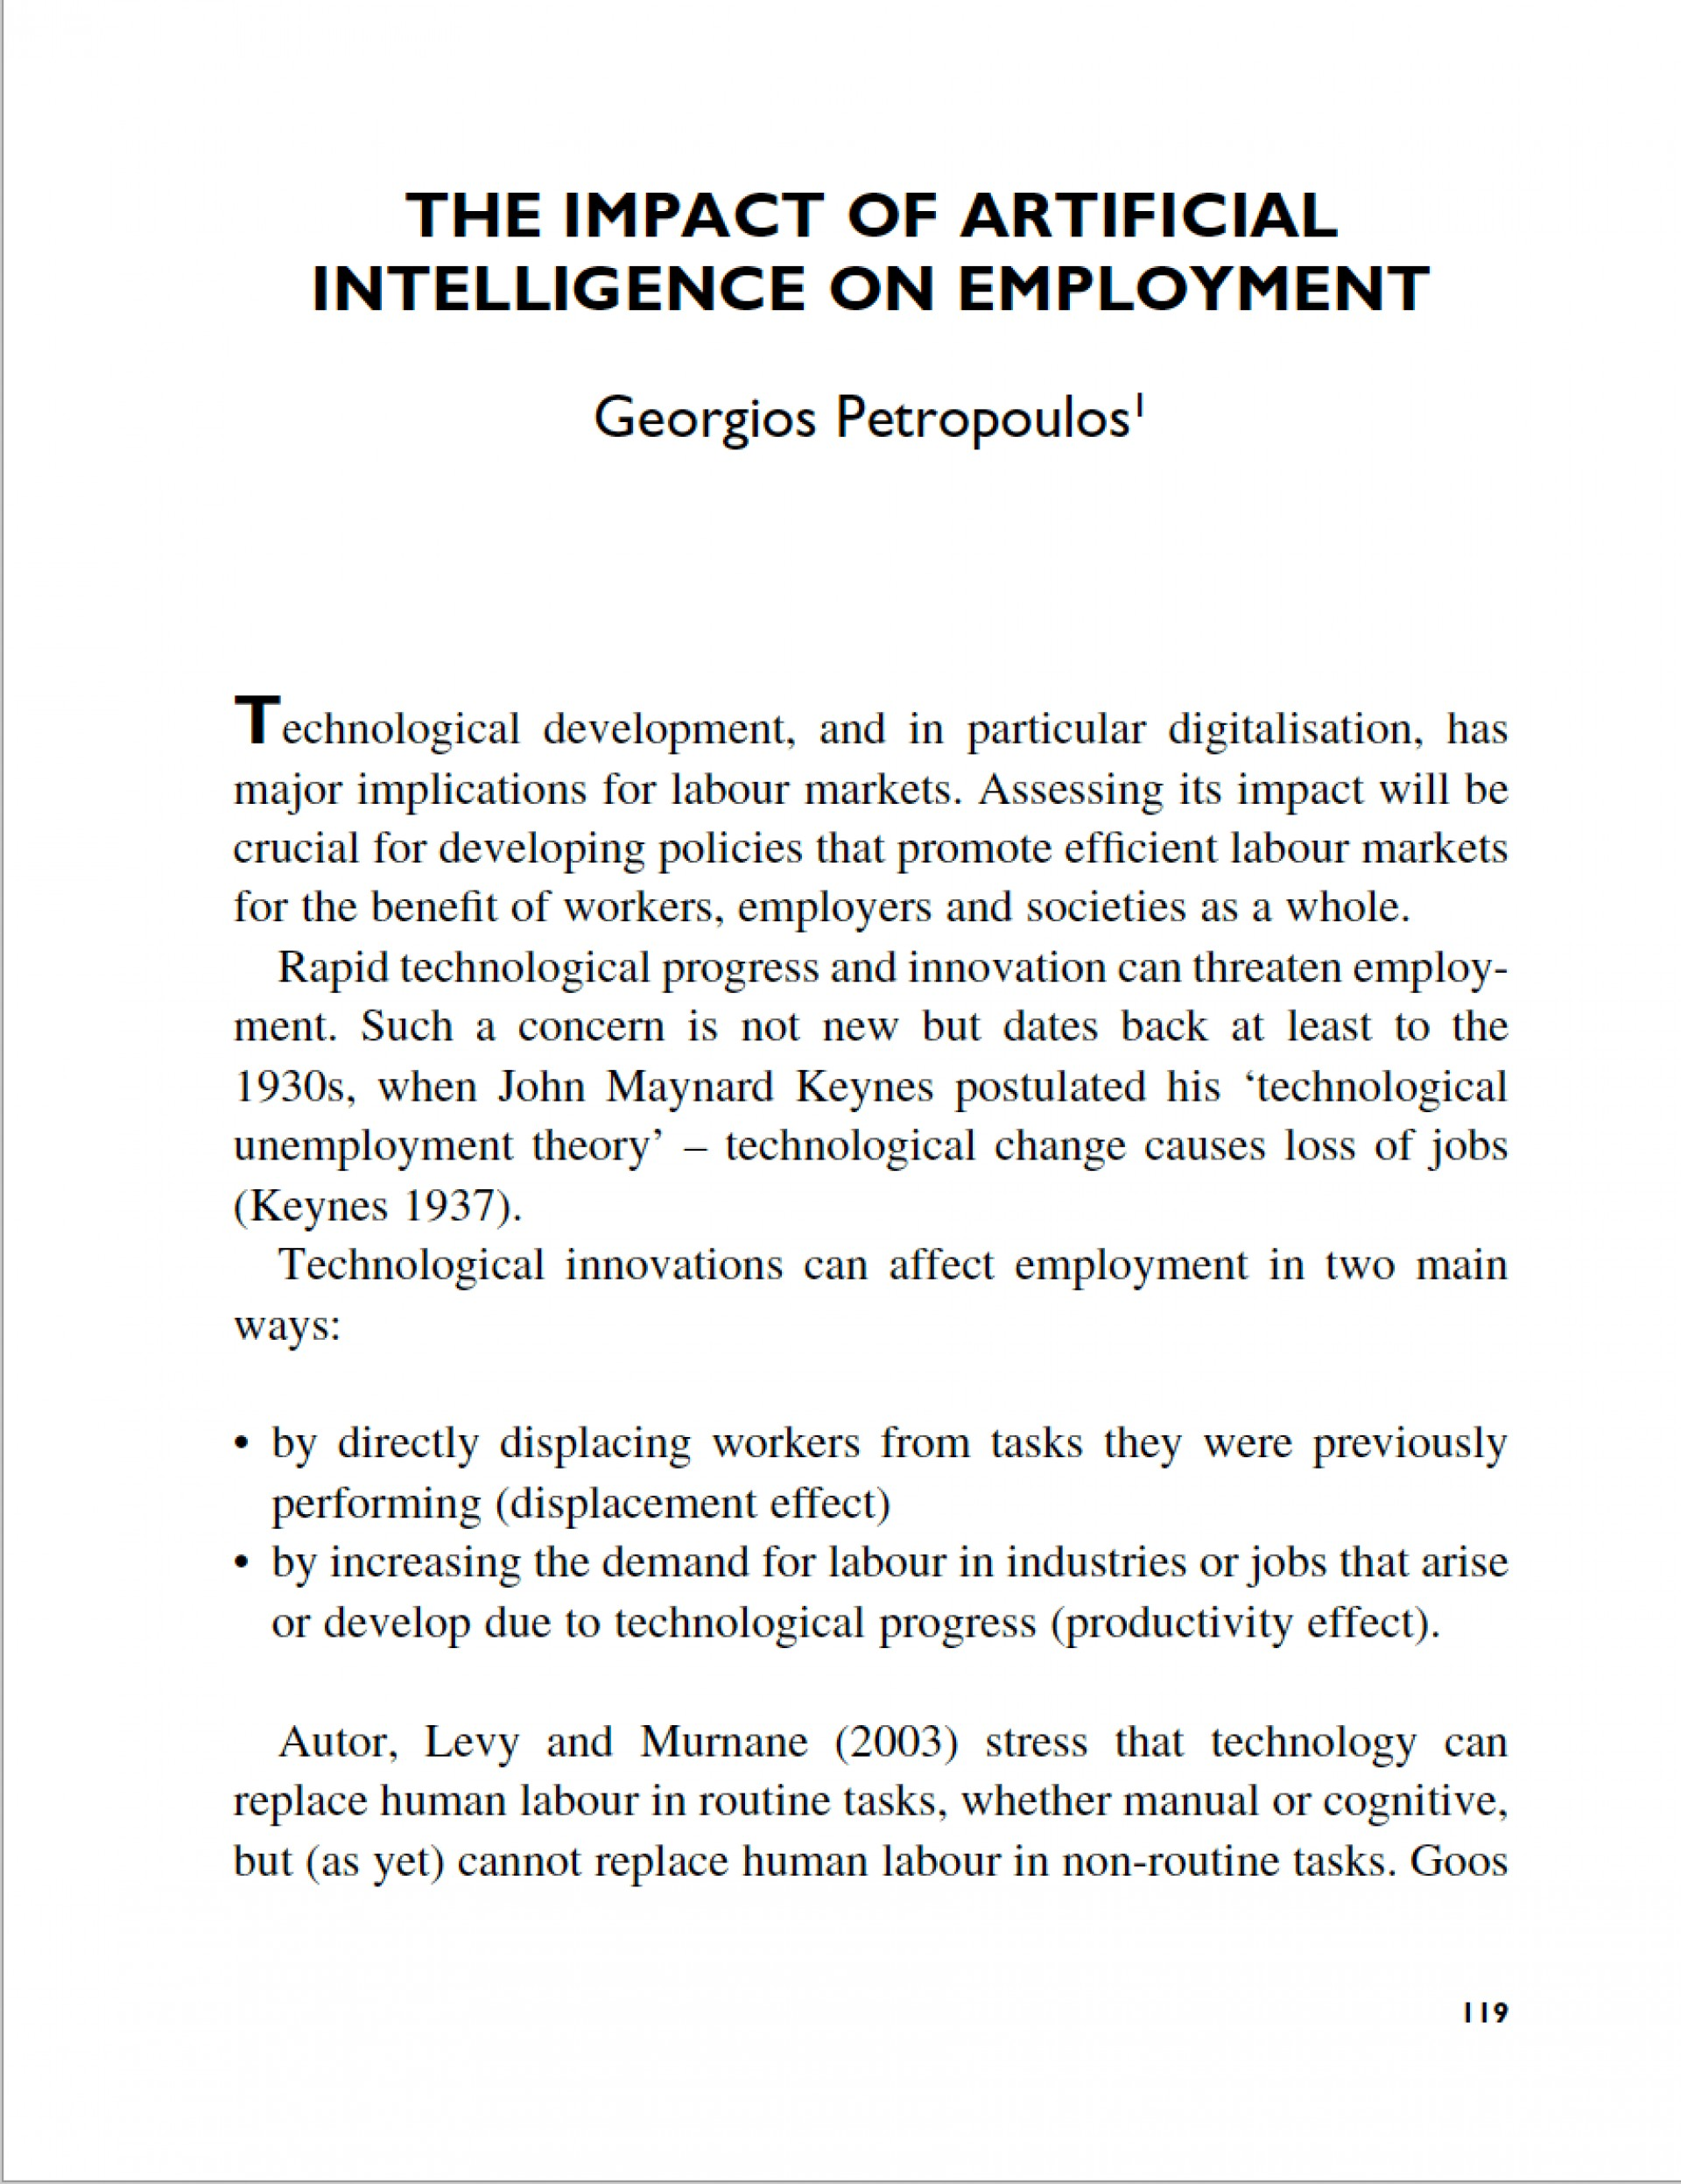 011 Artificial Intelligence Researchs Essays Screen Shot At Striking Research Papers Ieee Download Topics 1920